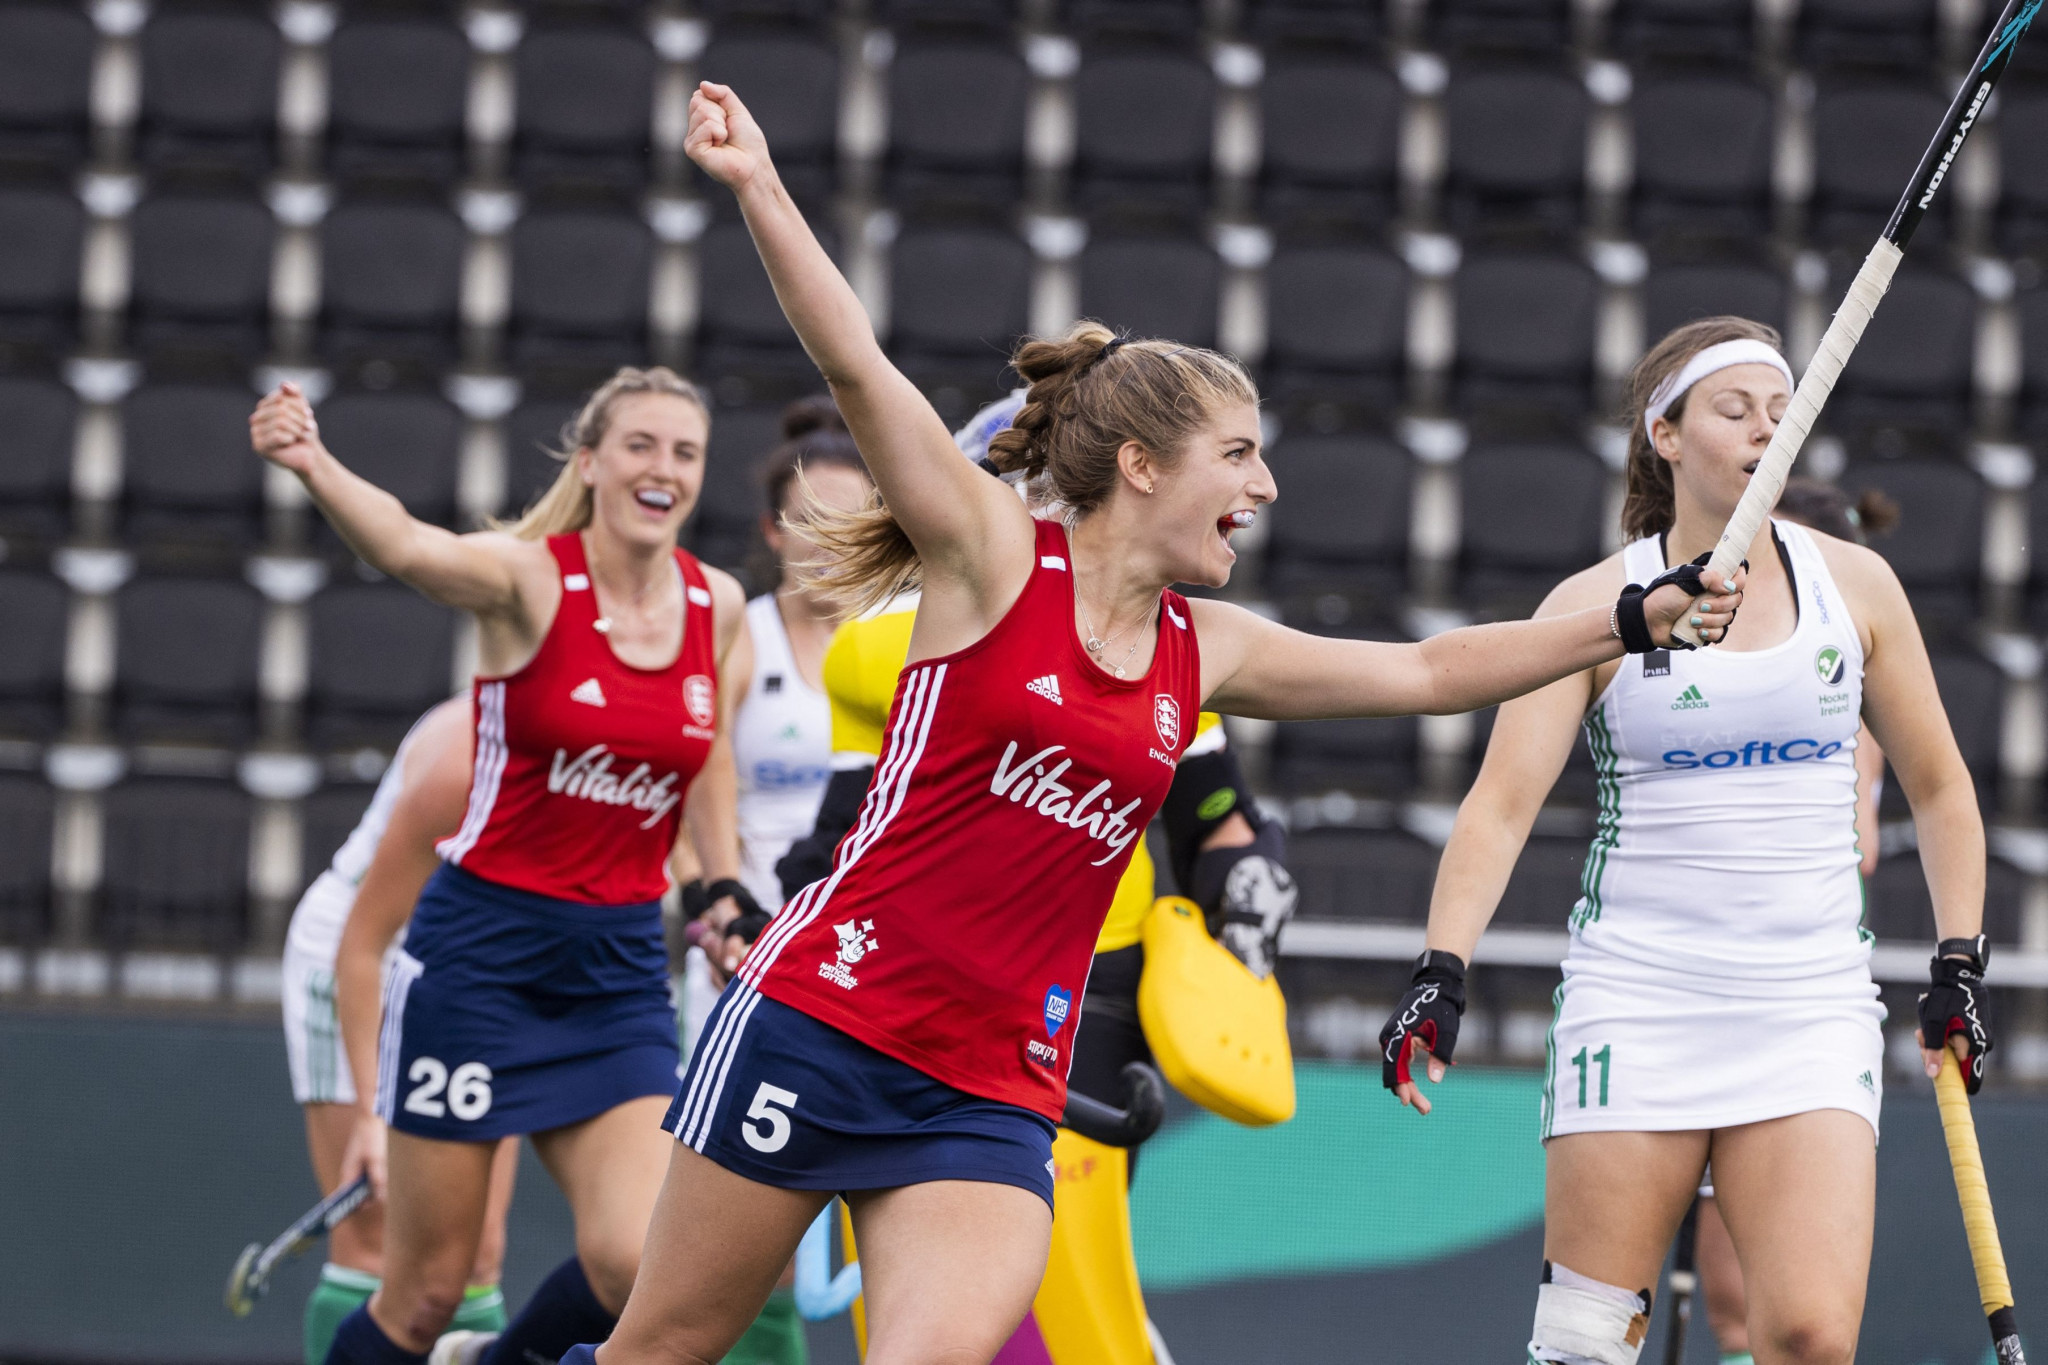 England's women's hockey team defeated Ireland 5-1 to top Pool C after two matches ©Getty Images